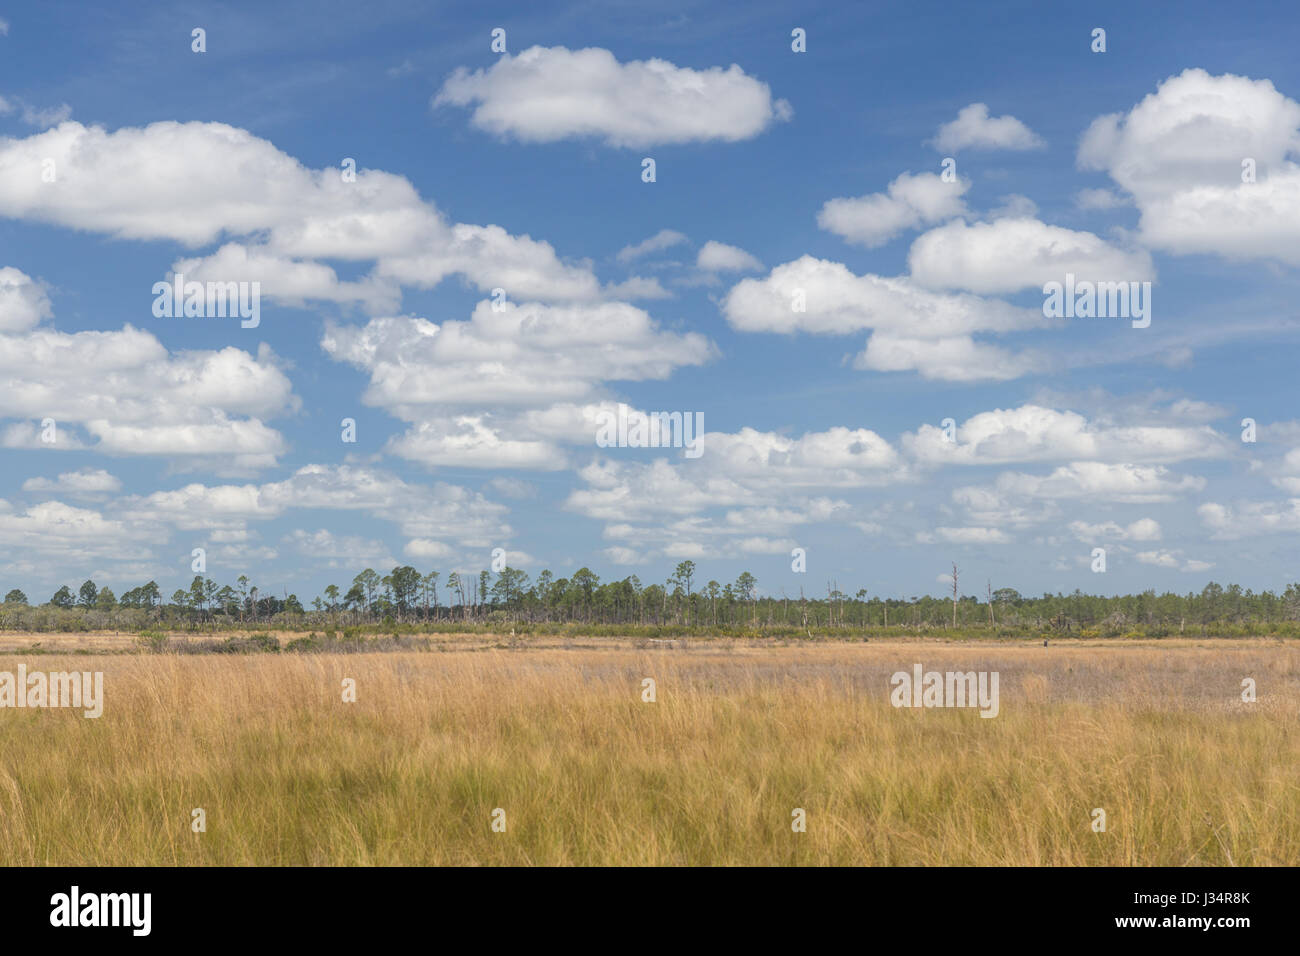 A view of Hopkins Prairie in Ocala National Forest in Florida. - Stock Image